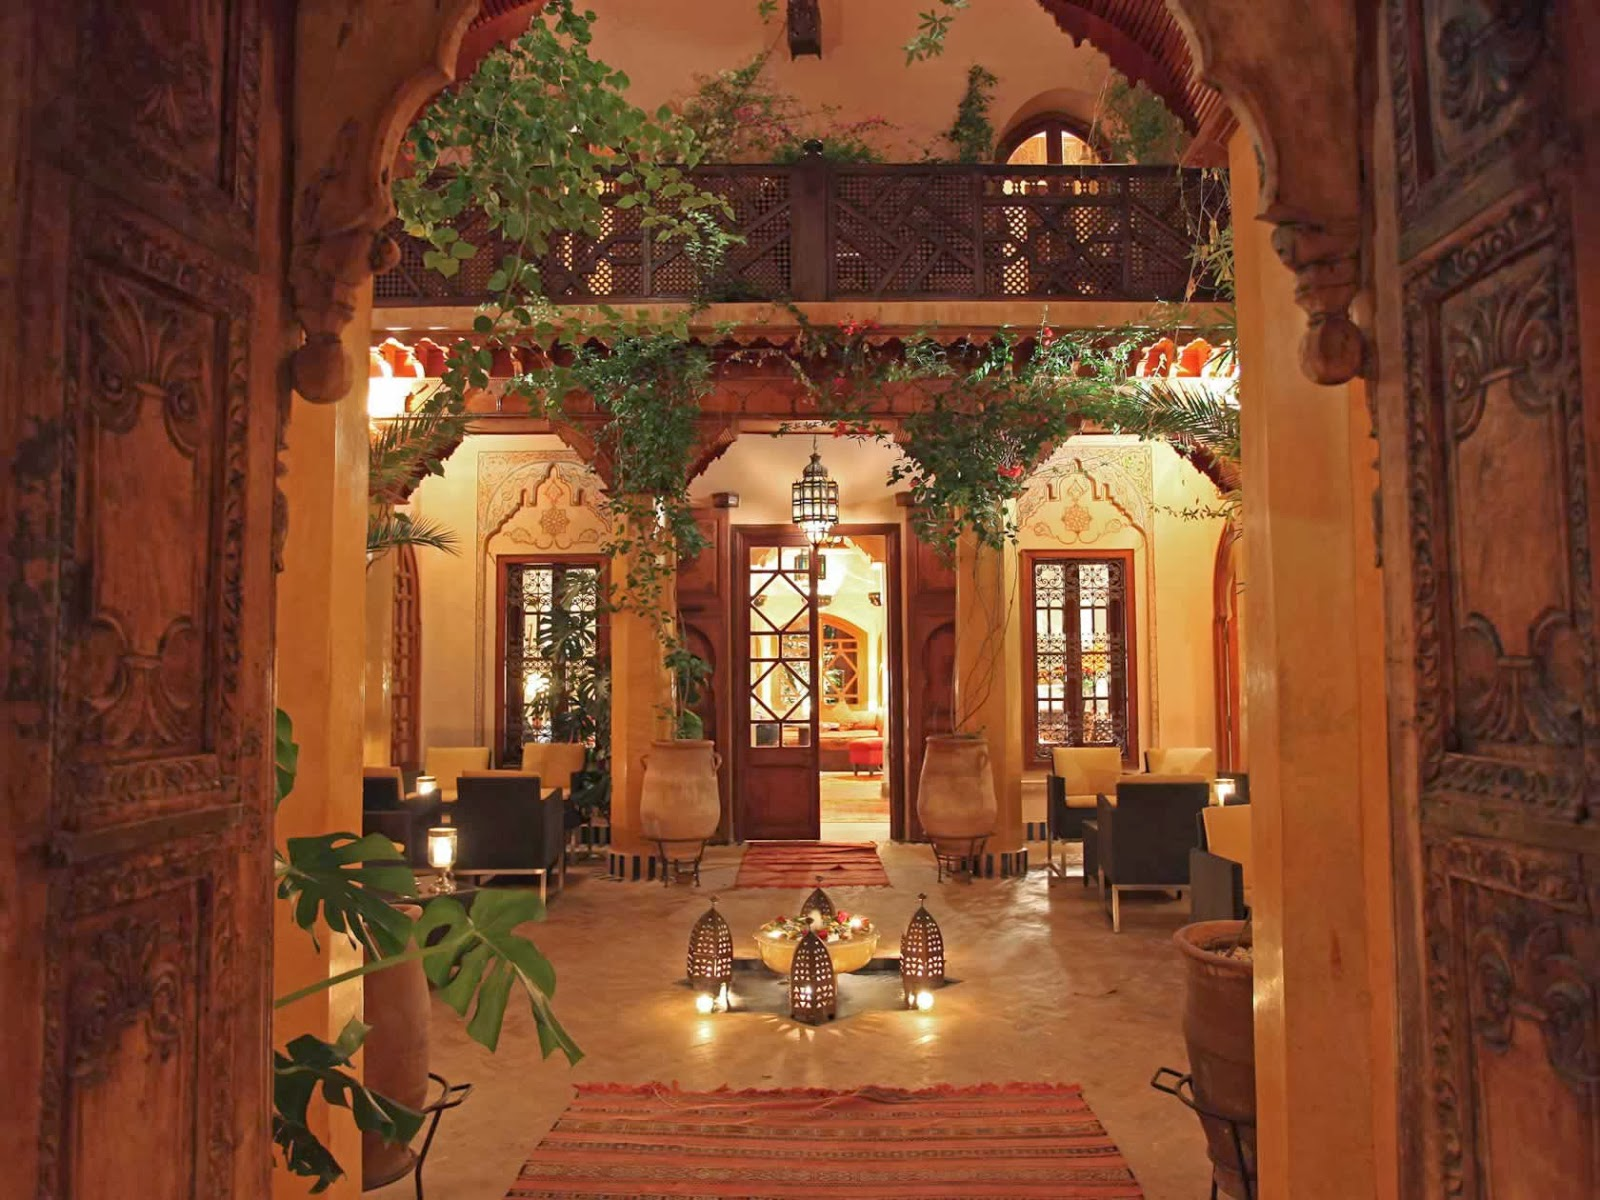 Decoration Arabe Maison Luxury Life Design La Maison Arabe Marrakech Morocco